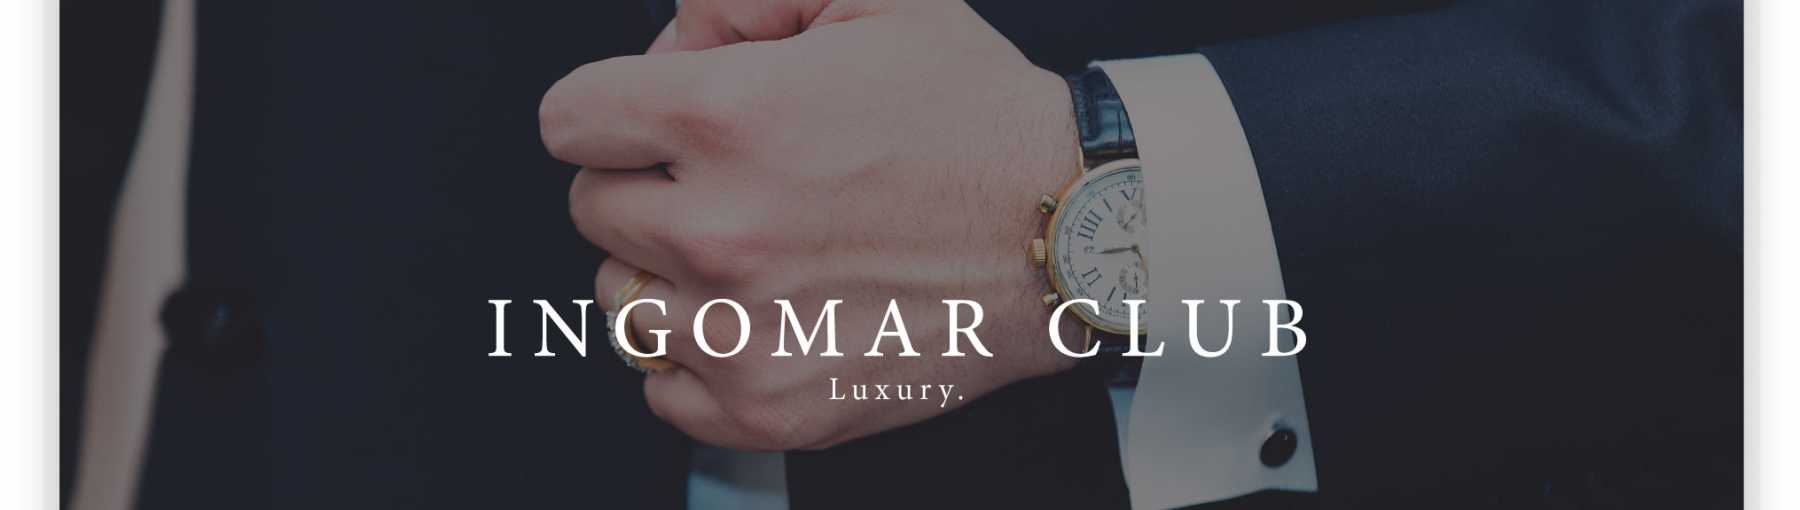 Image showcasing core design Theme - Luxury